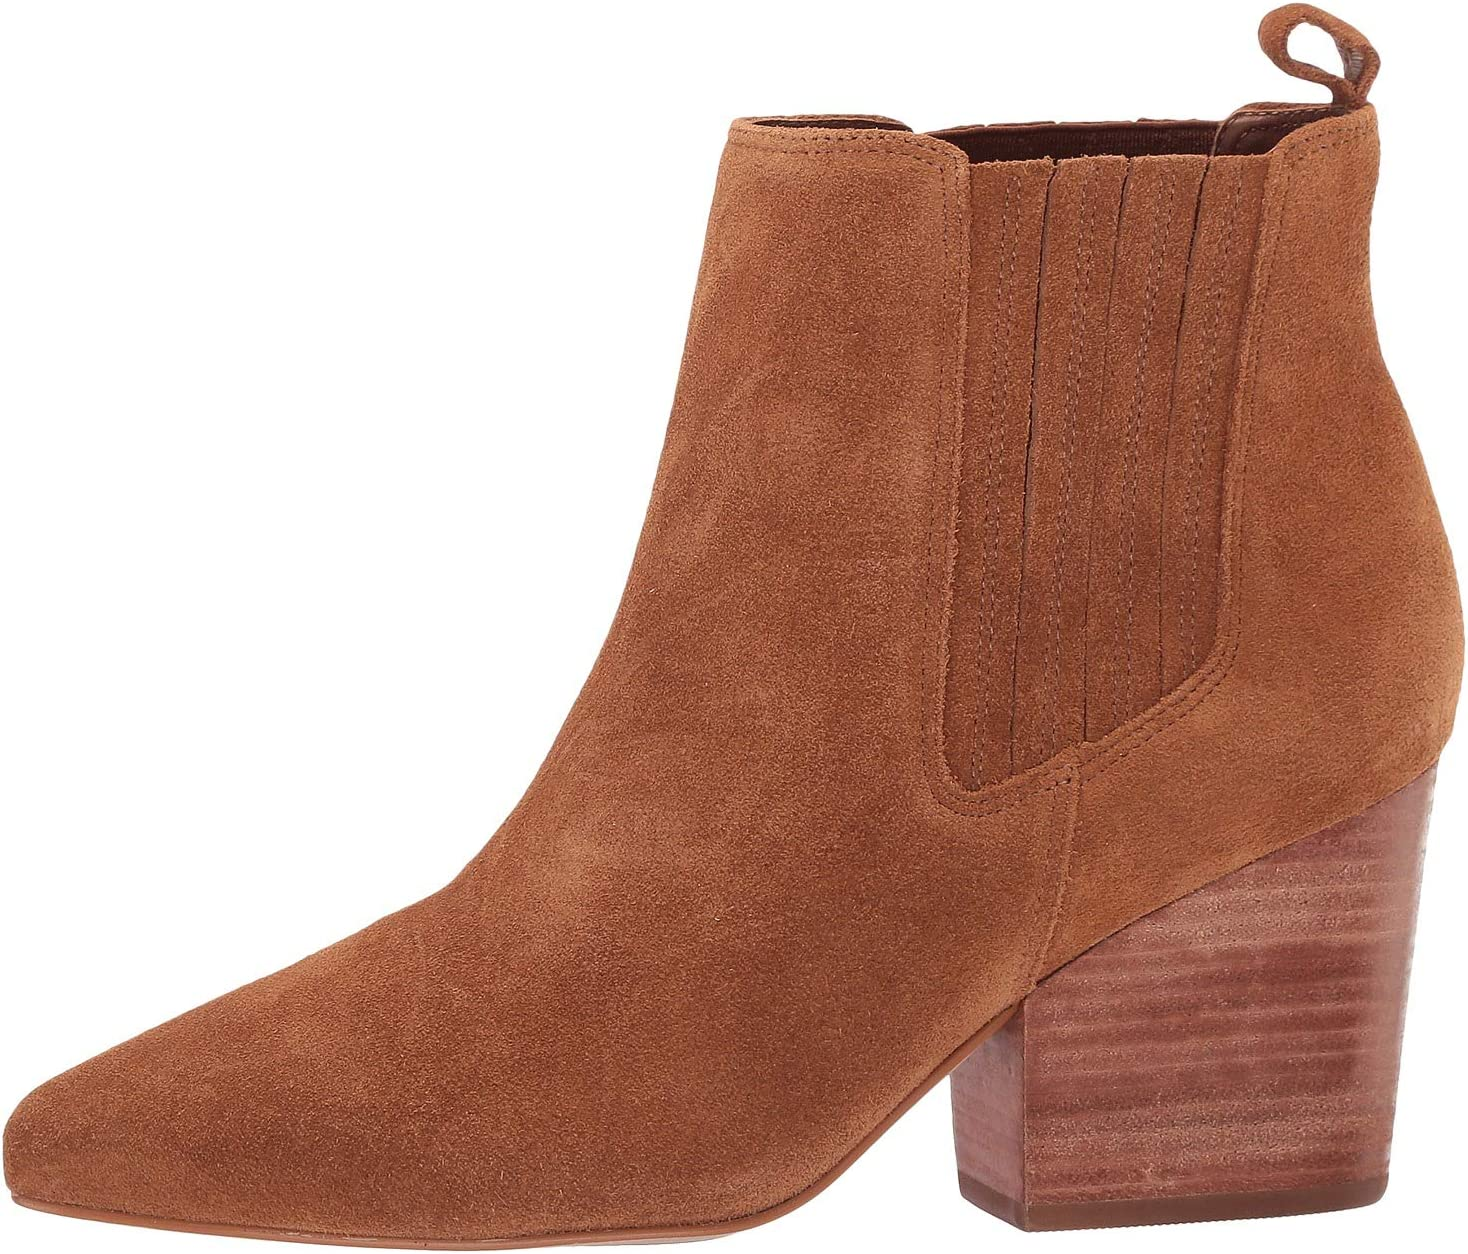 ABLE Rojas Western Boot | Women's shoes | 2020 Newest